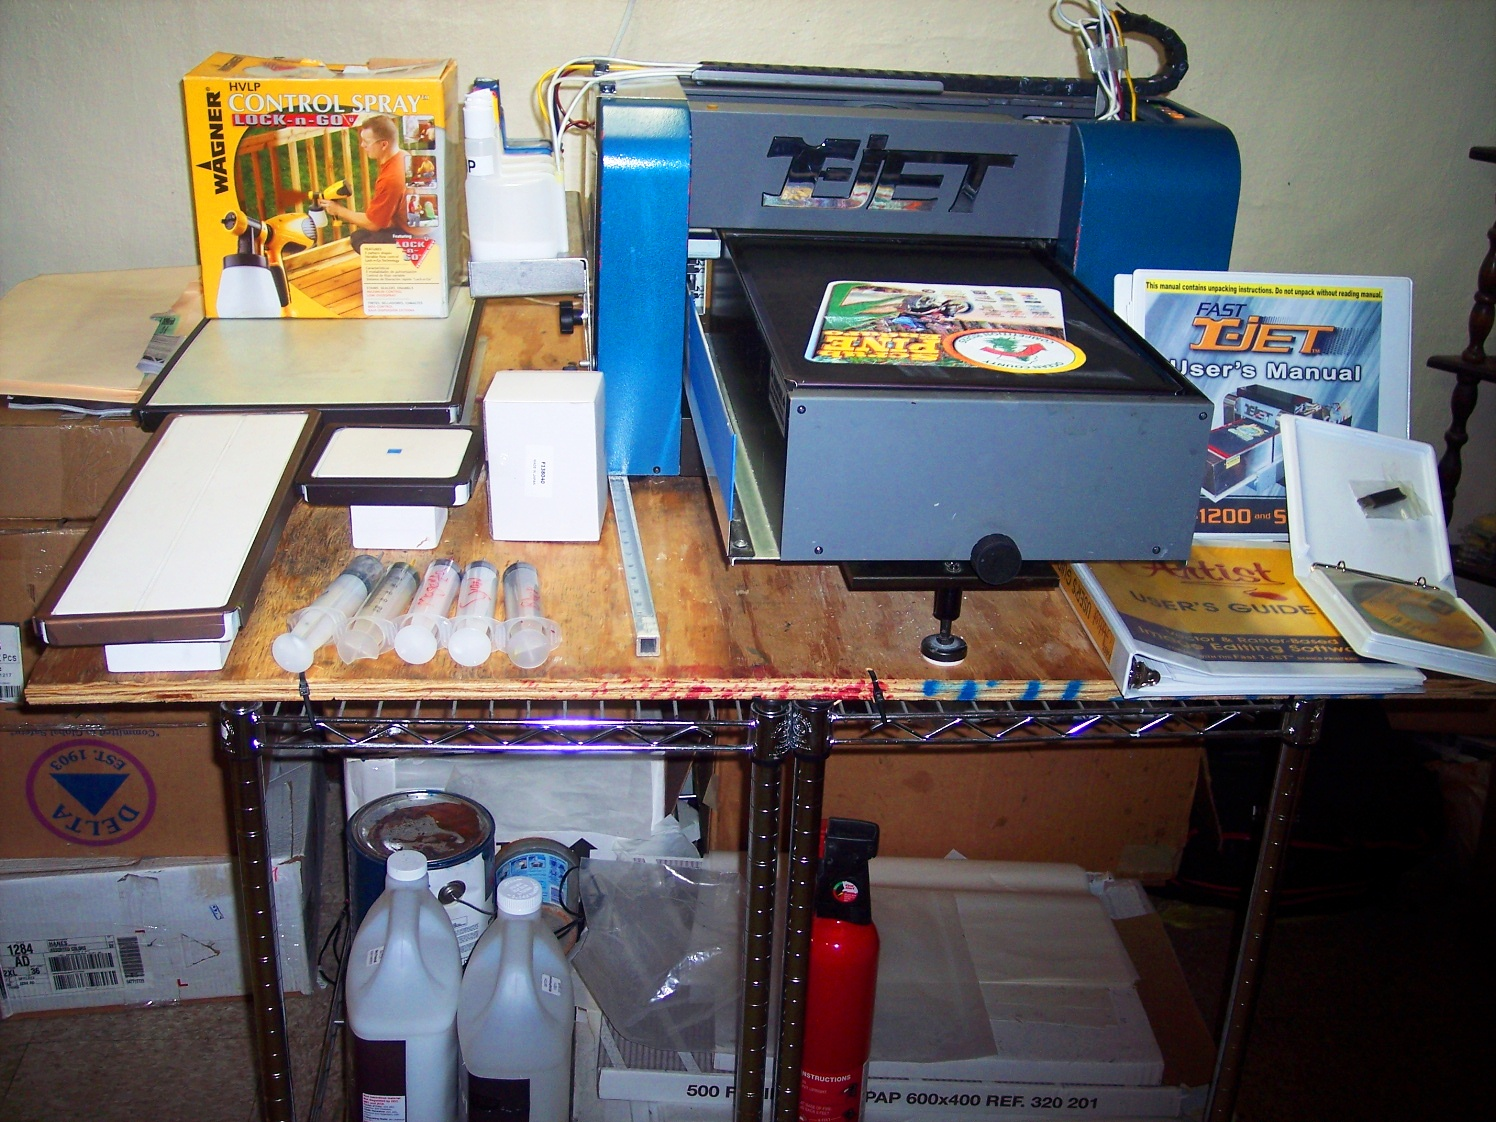 Direct To Garment Printer For Sale